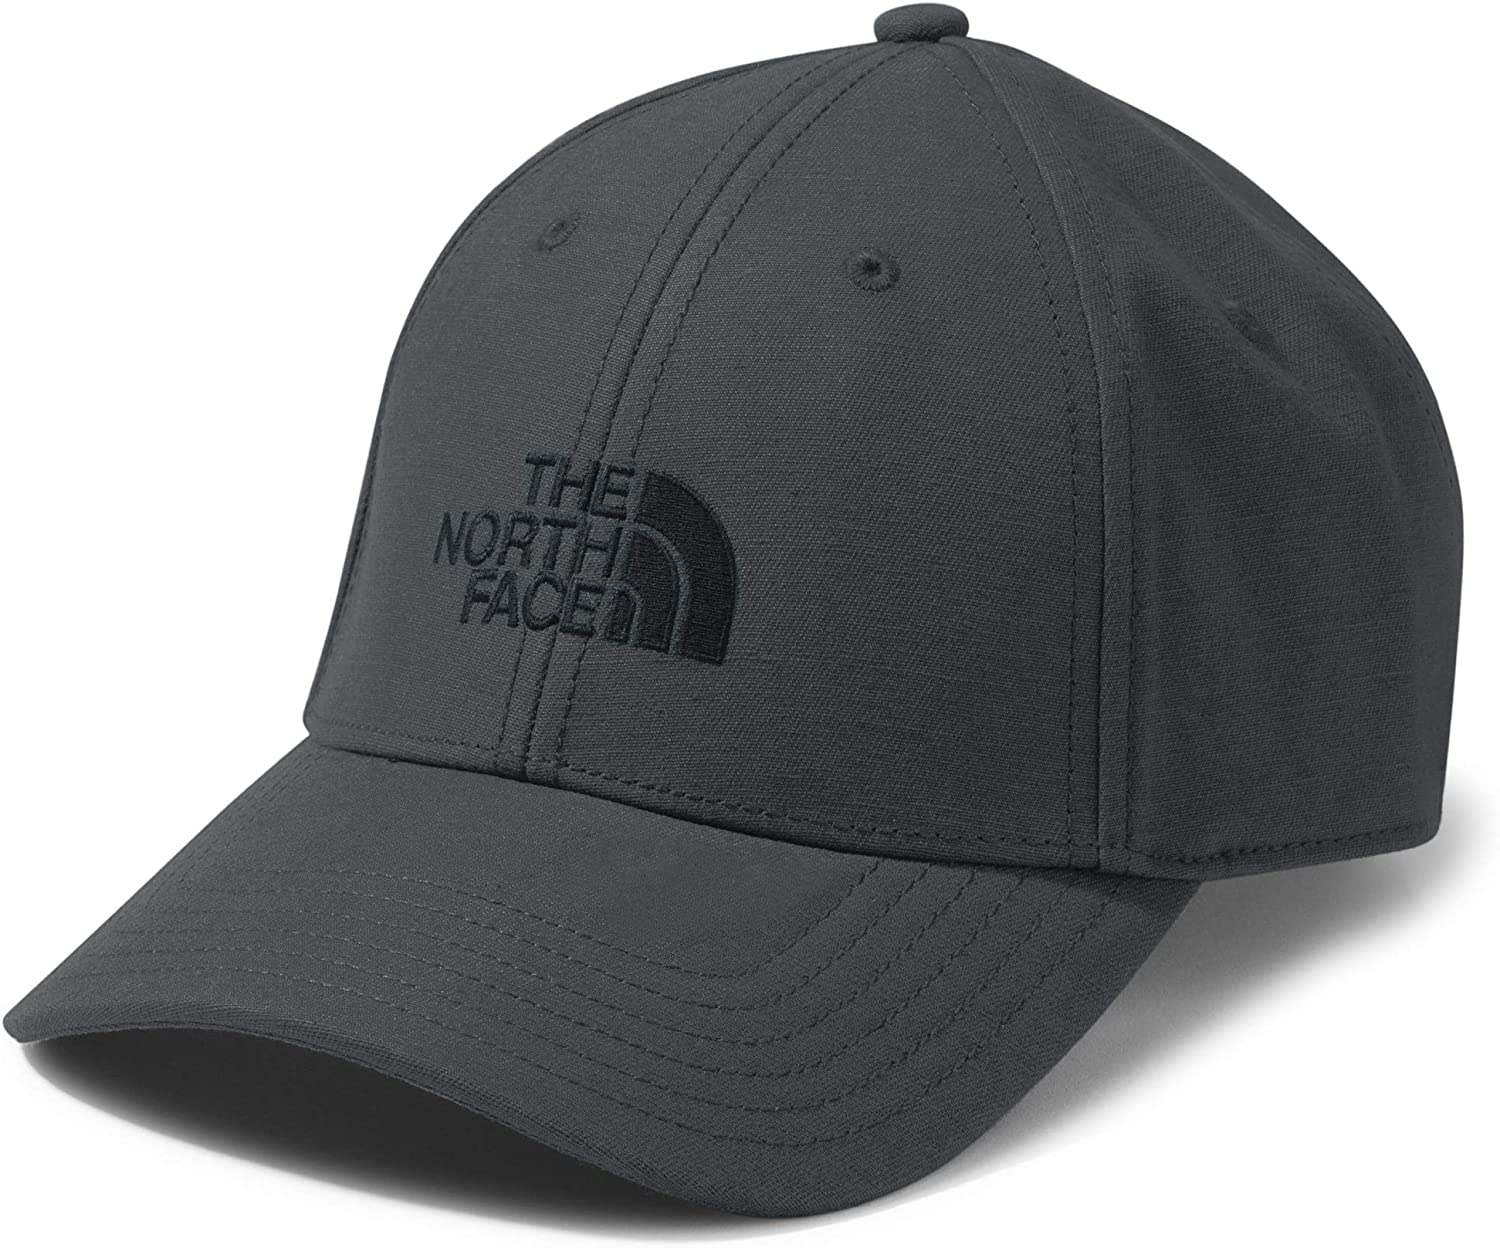 Concealment toast that's all  Amazon.com: The North Face 66 Classic Hat Asphalt Grey, Asphalt Grey, REG:  Clothing